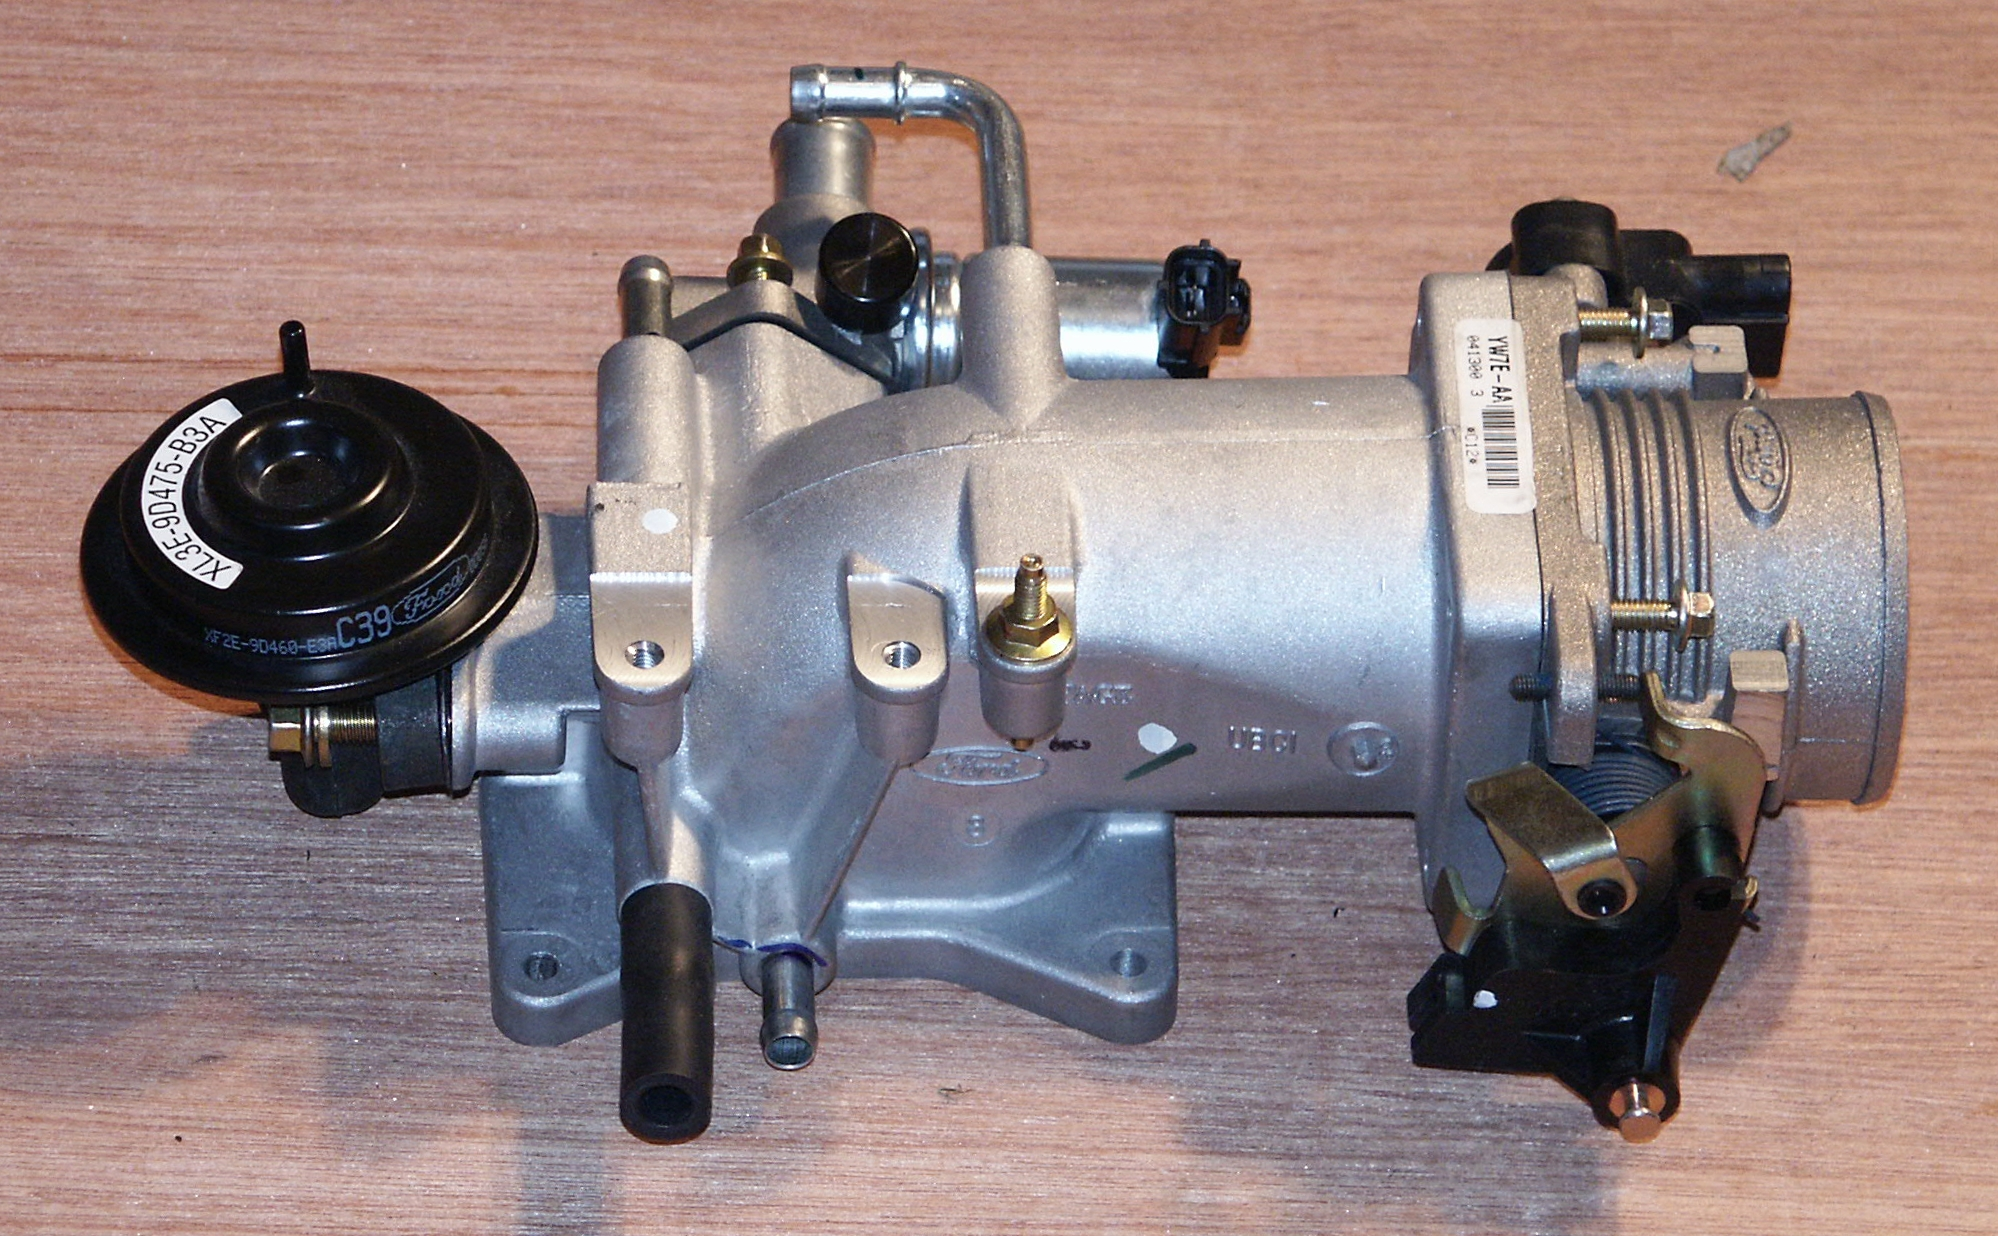 Pict besides Picture as well Maxresdefault furthermore C Ccba likewise Zzvjt. on ford egr valve location